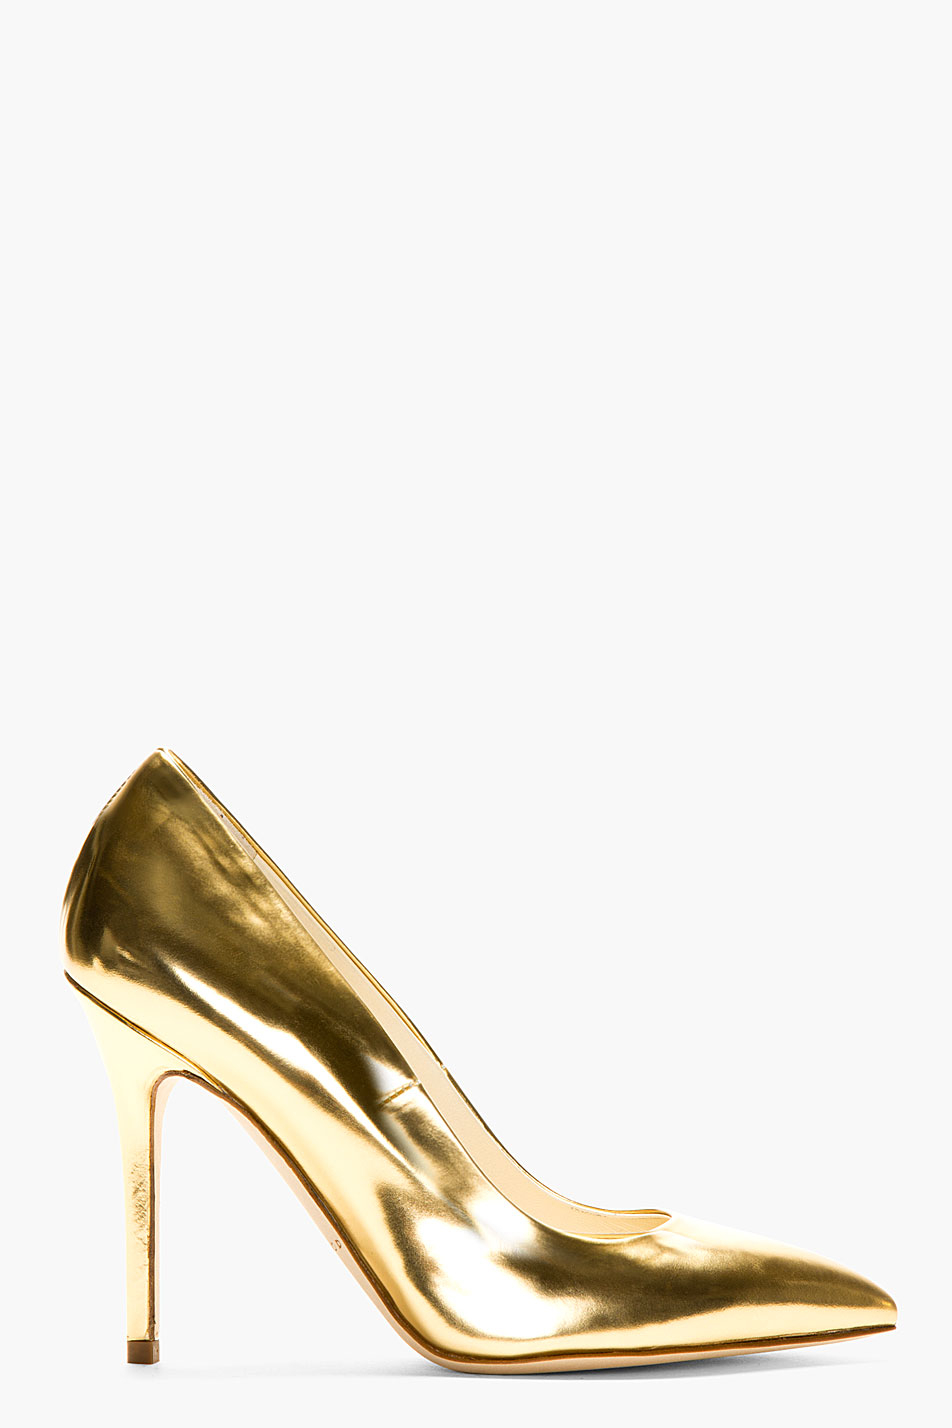 Brian atwood Gold Leather Pumps in Metallic | Lyst